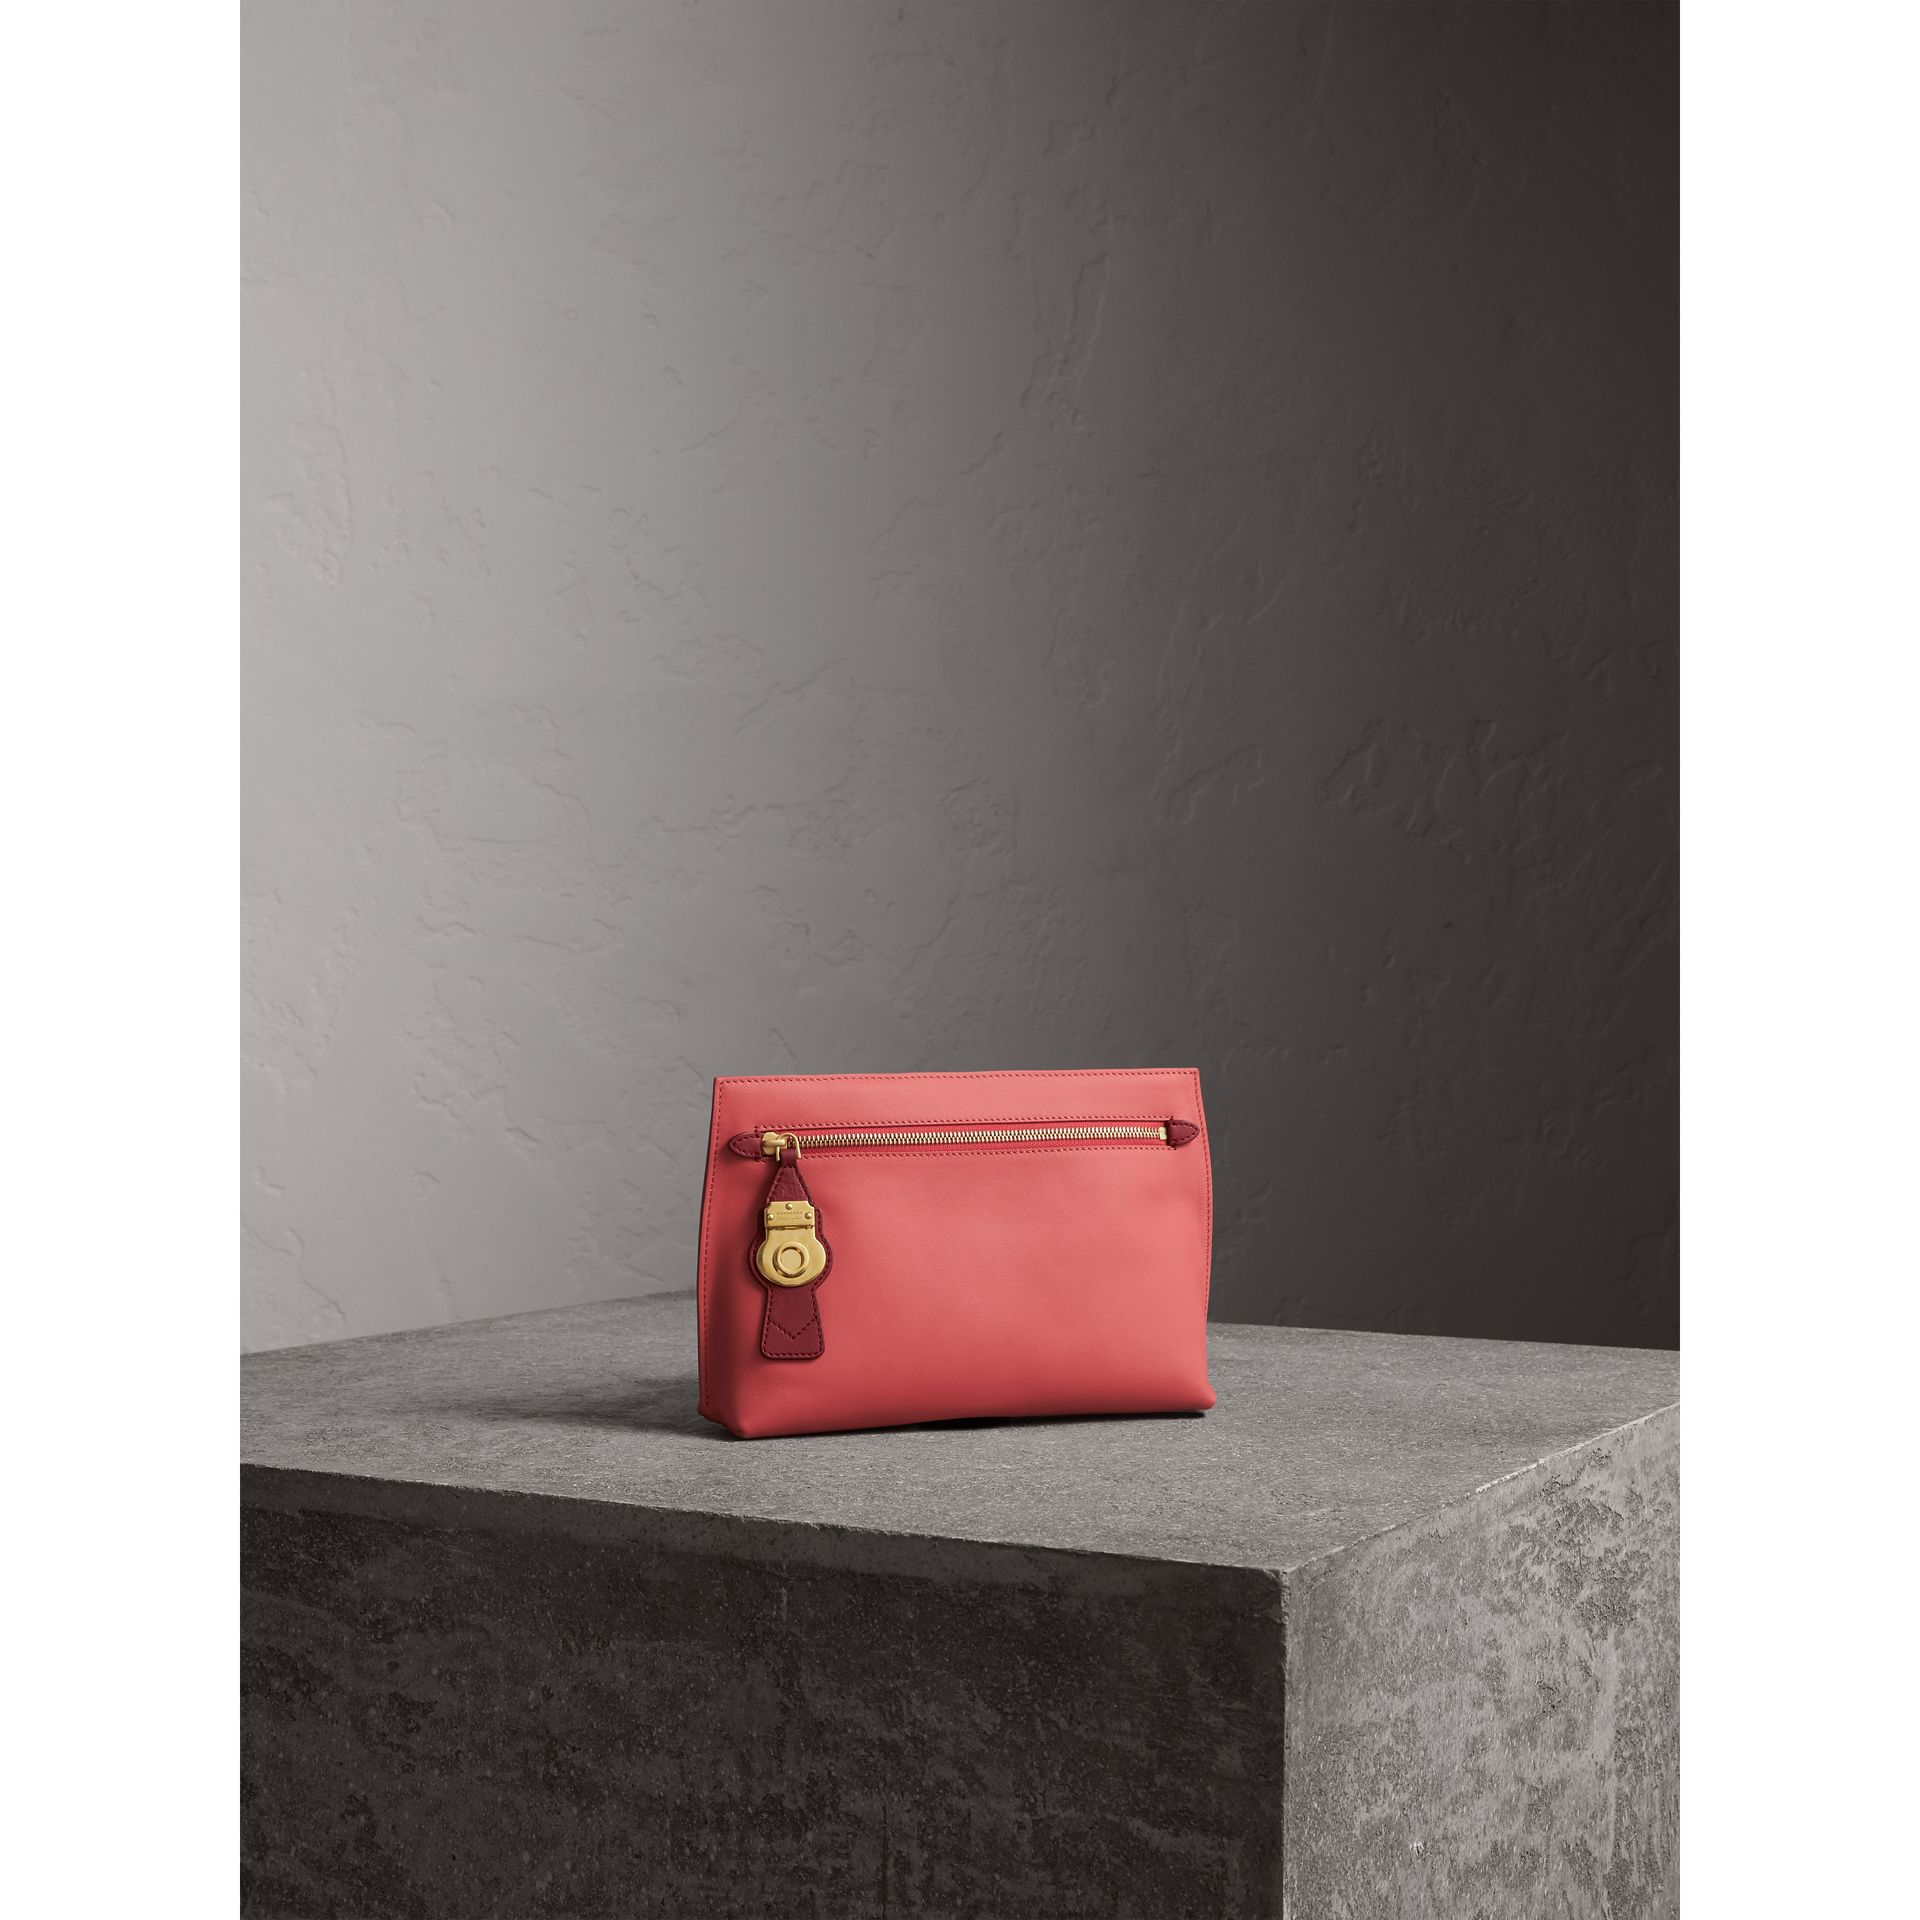 Two-tone Trench Leather Wristlet Pouch in Blossom Pink/antique Red - Women | Burberry - gallery image 7